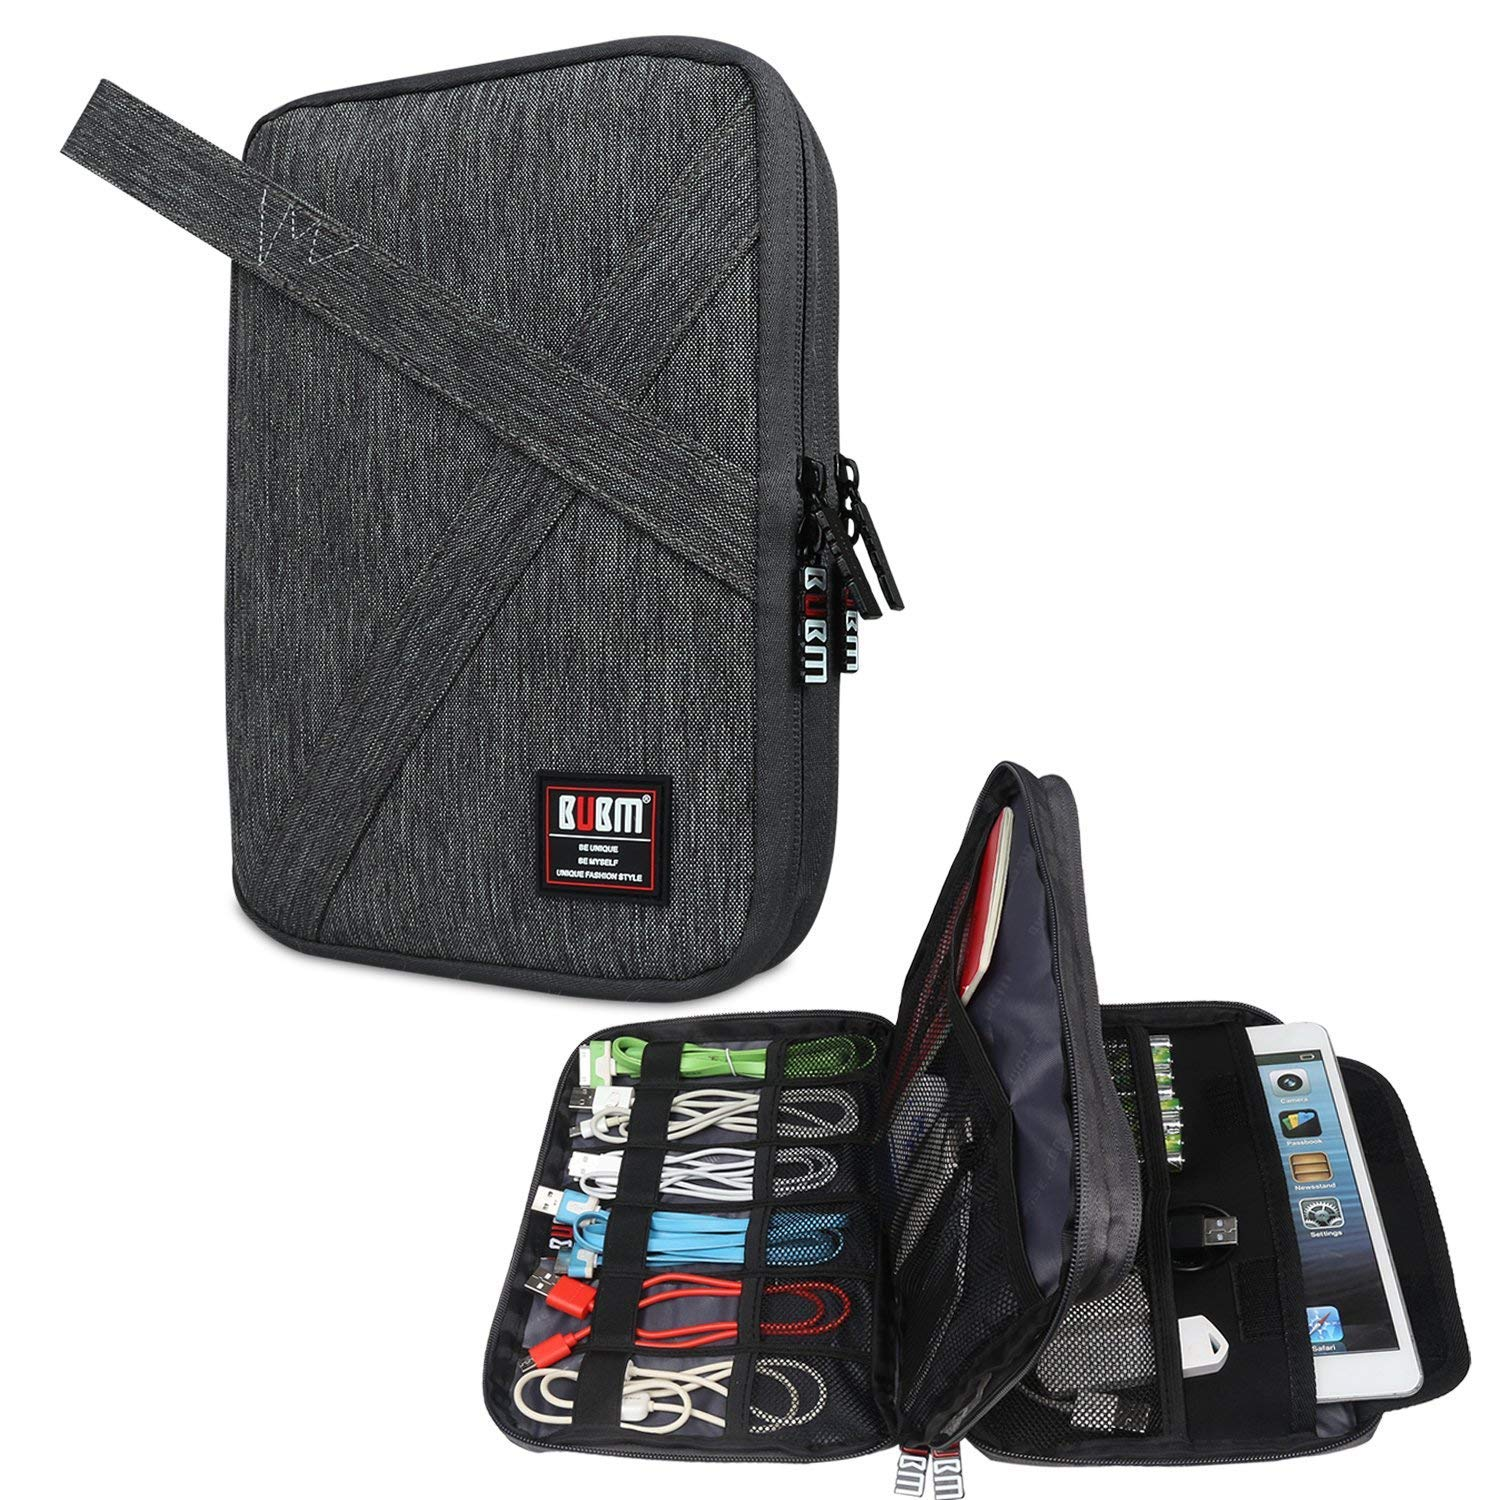 BUBM Travel Cable Organizer, Double Layer Electronic Accessories Bag for Cord, USB Flash Drive, Earphone, Memory Card and More, A Padded Pouch Fits for iPad Mini,Denim Gray